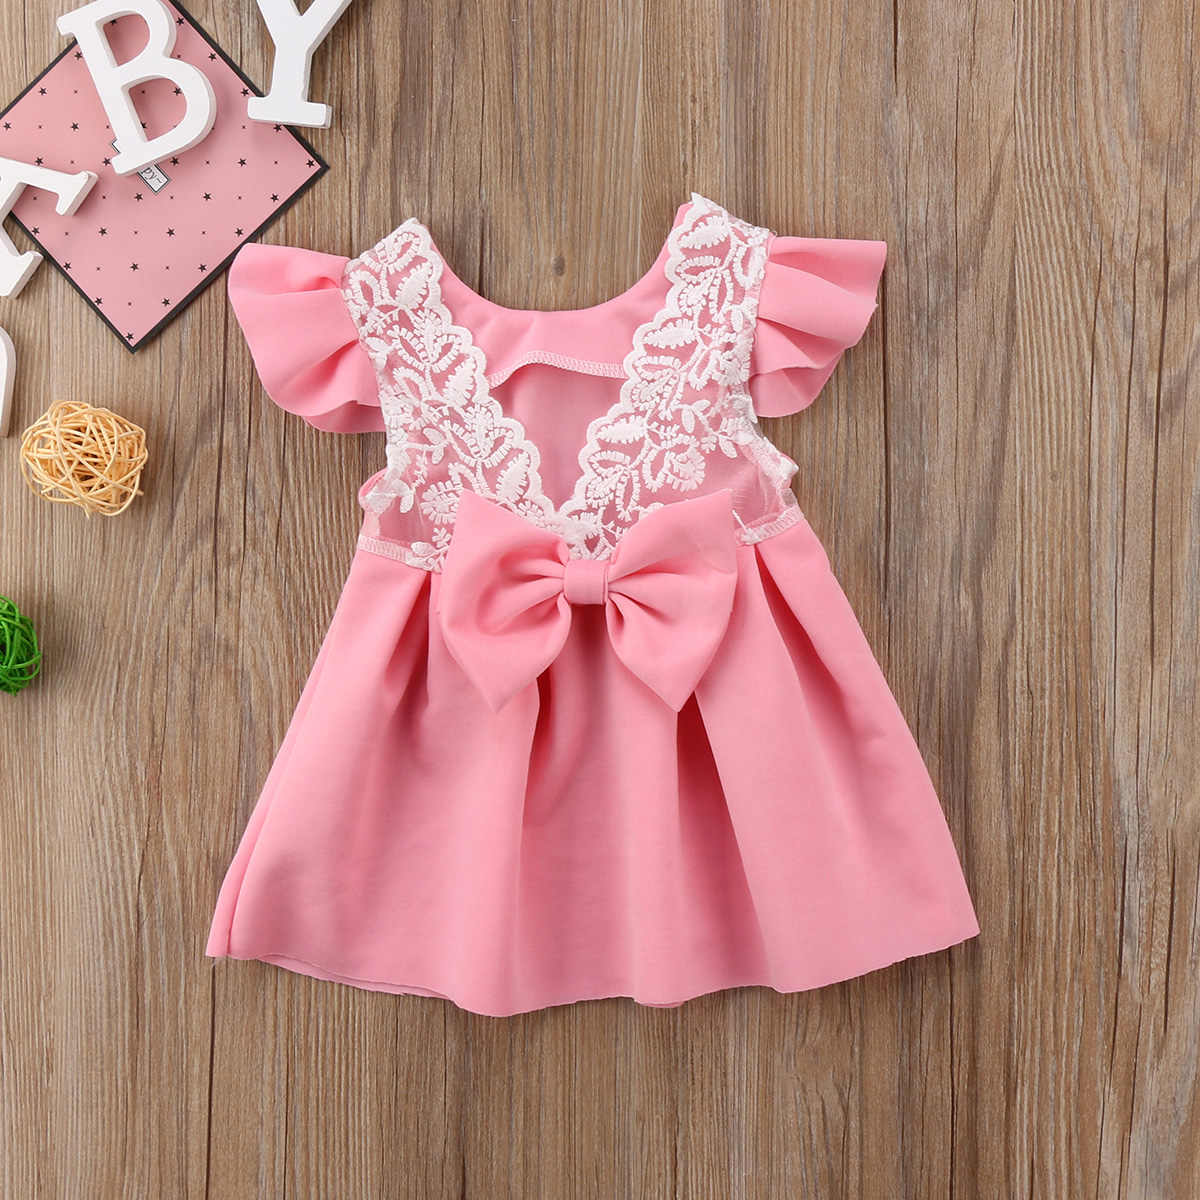 a34508bbd1f7e Detail Feedback Questions about Pudcoco Baby Girls Dress Toddler ...